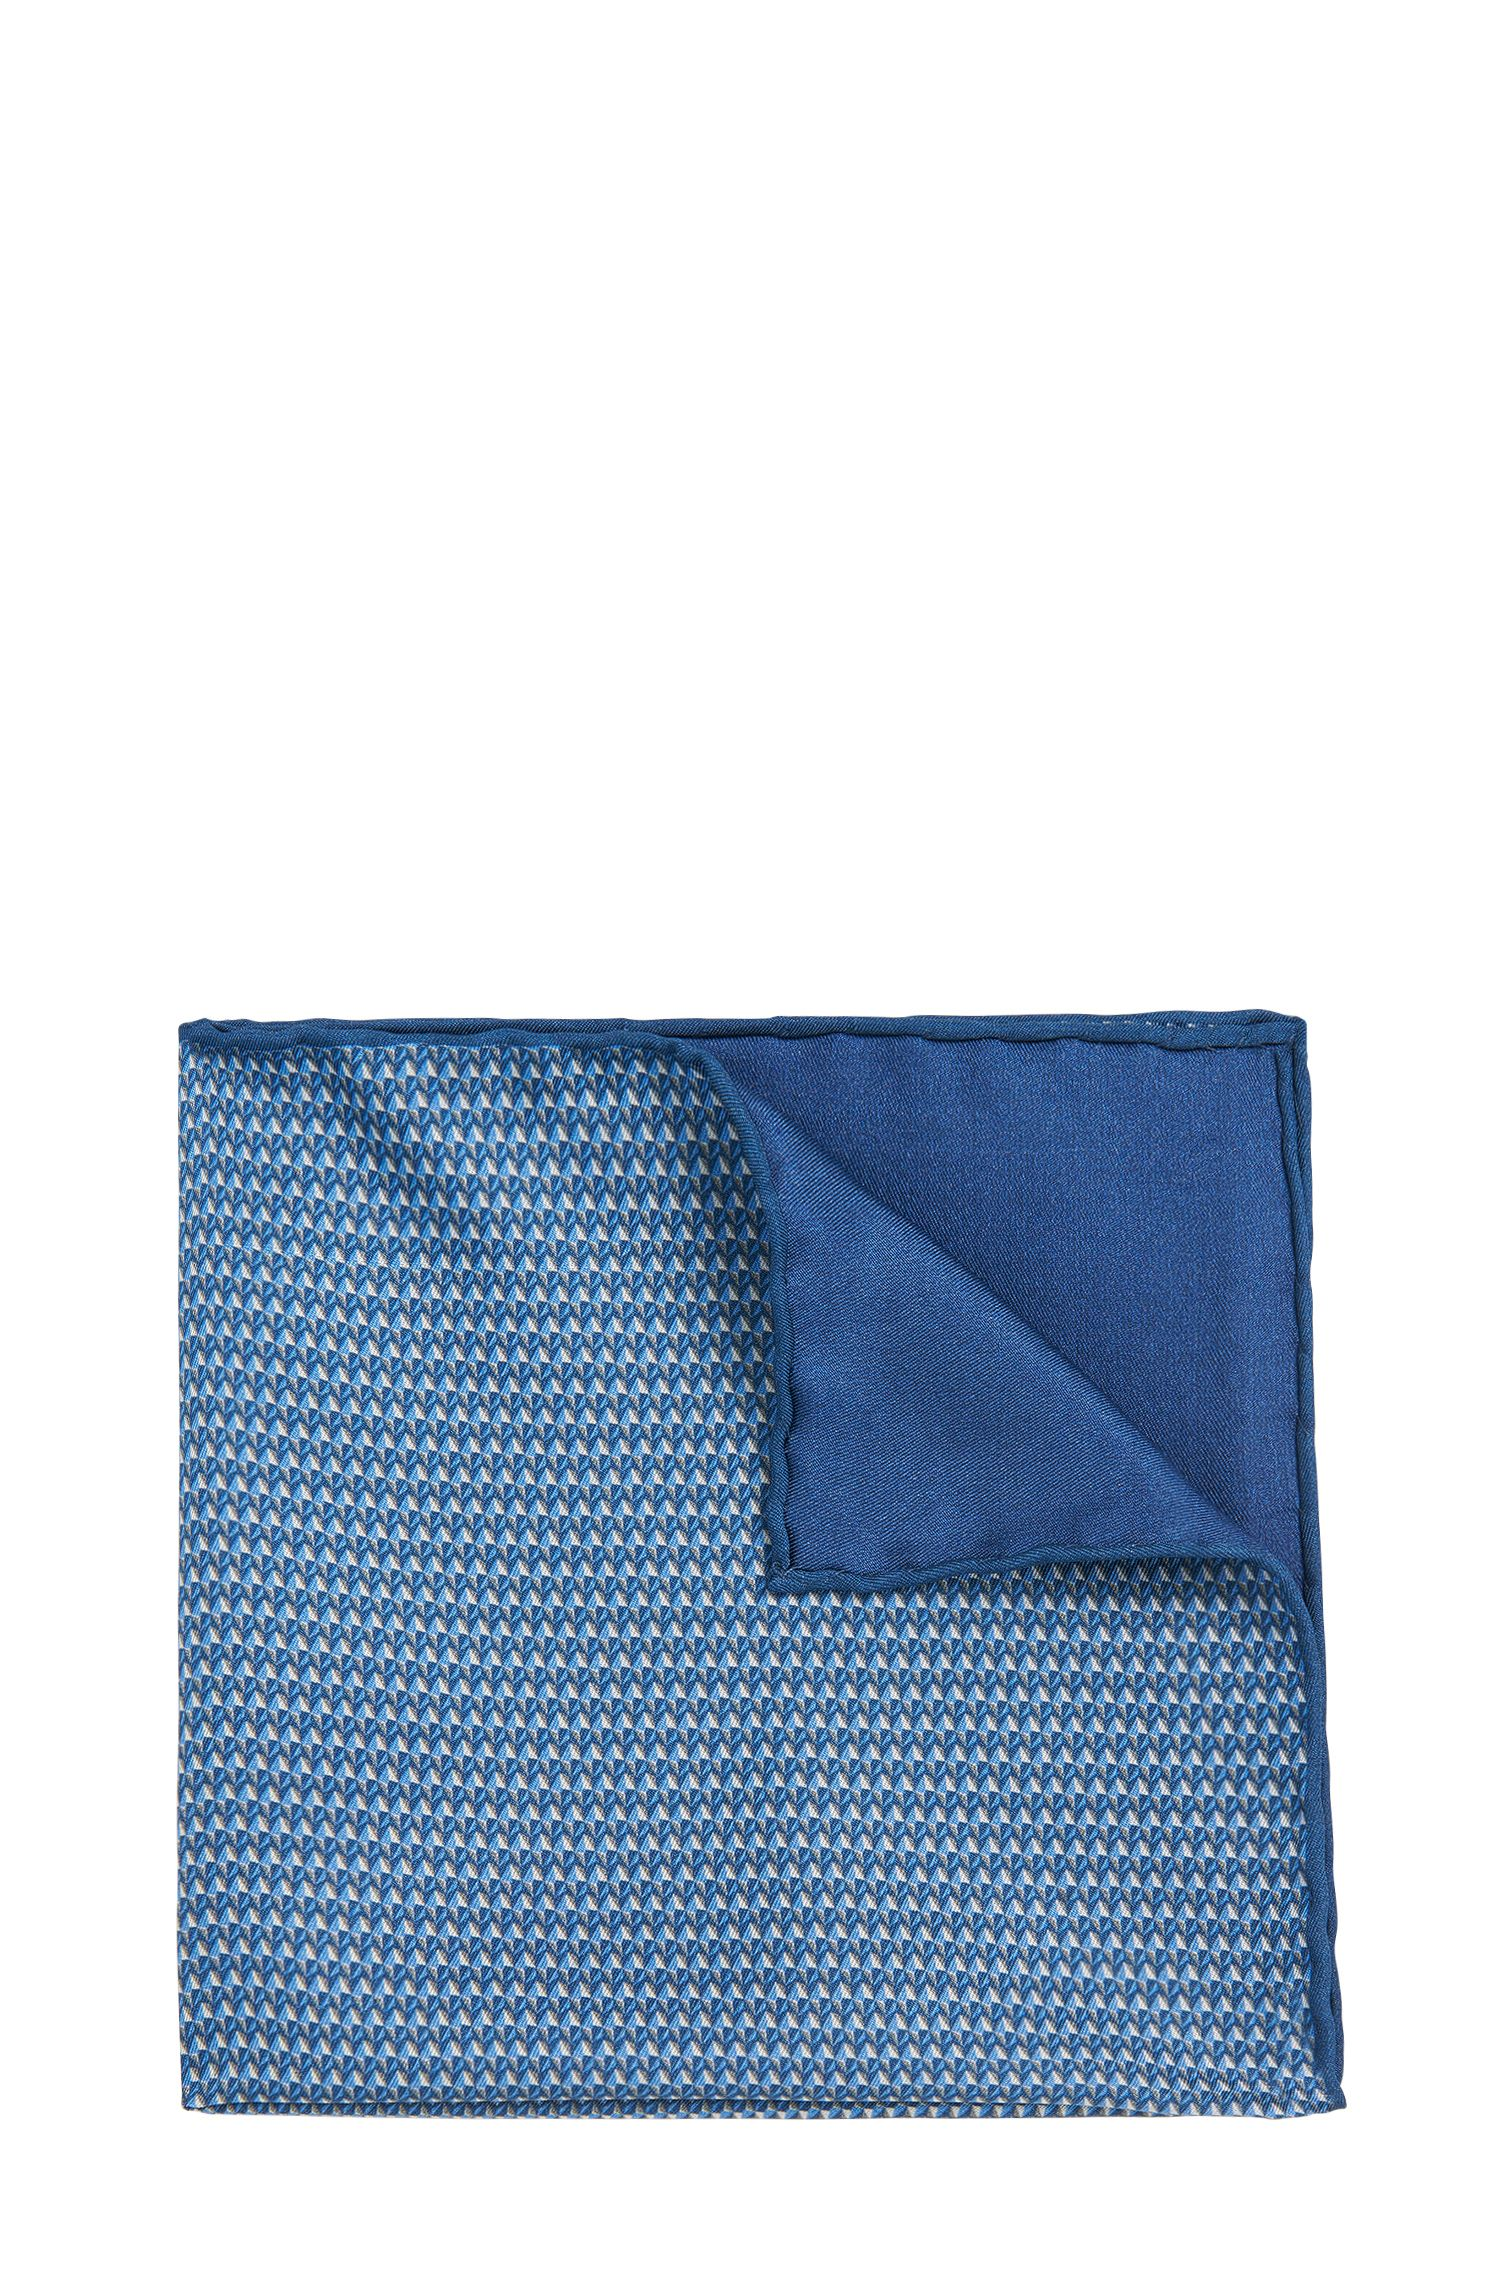 Gemustertes Tailored Einstecktuch aus Seide: 'T-Pocket sq. cm 33x33'